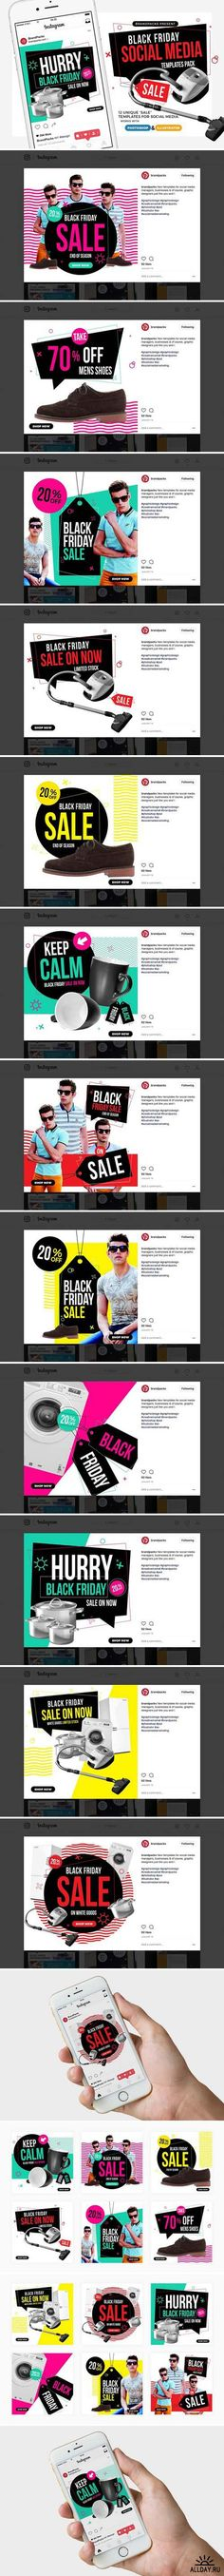 CM - Black Friday Social Media Templates 1955381